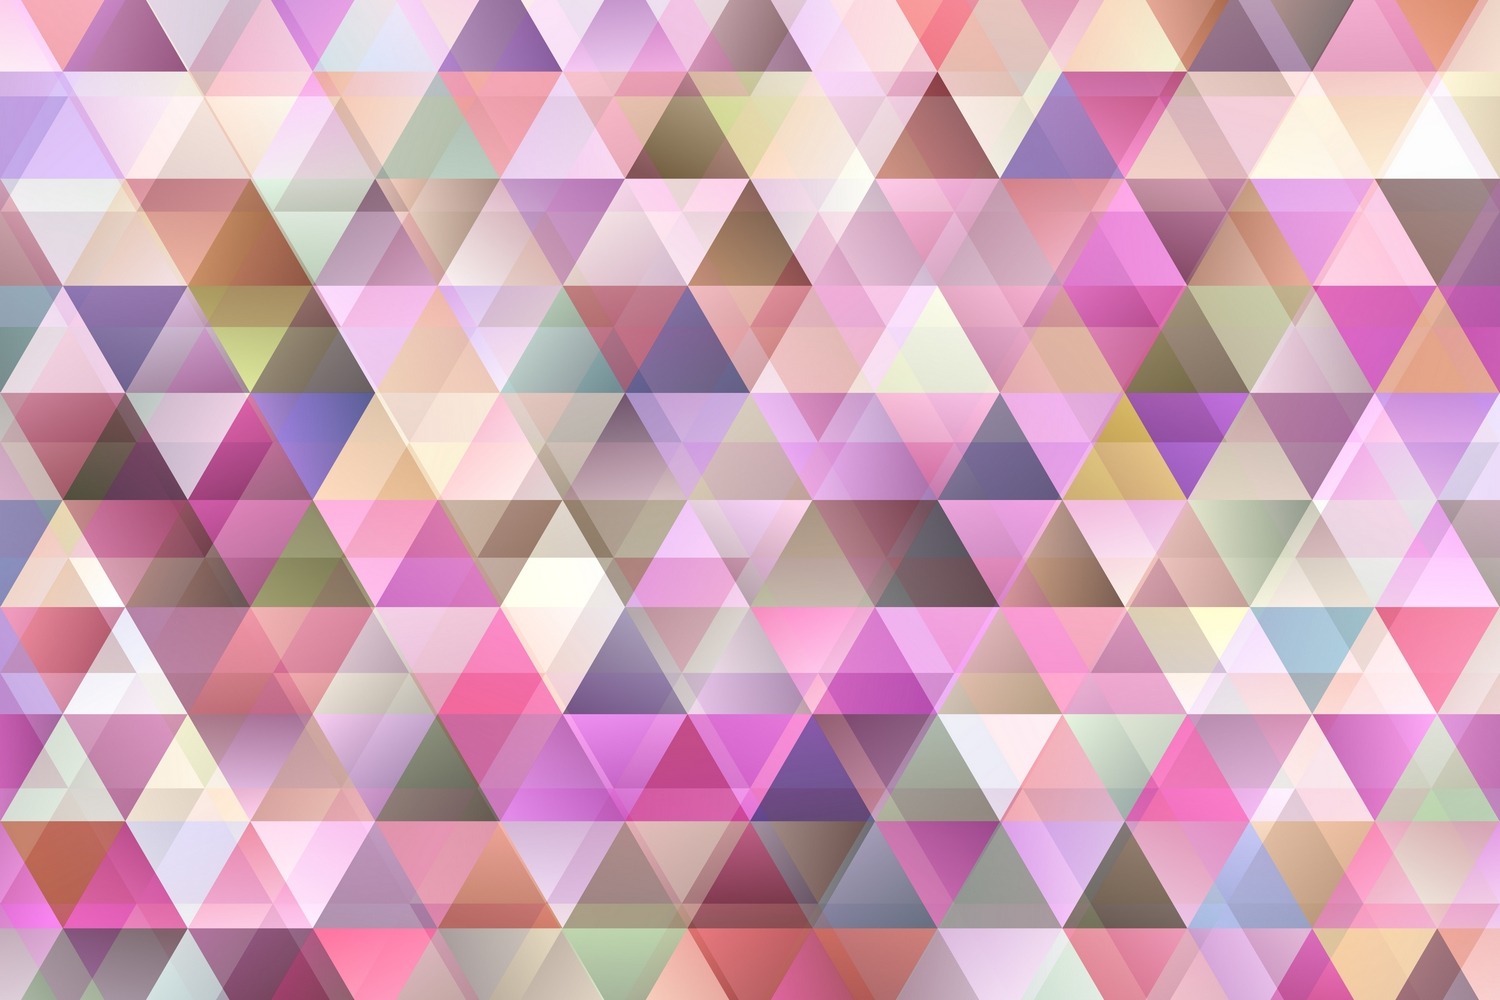 24 Gradient Polygon Backgrounds AI, EPS, JPG 5000x5000 example image 16